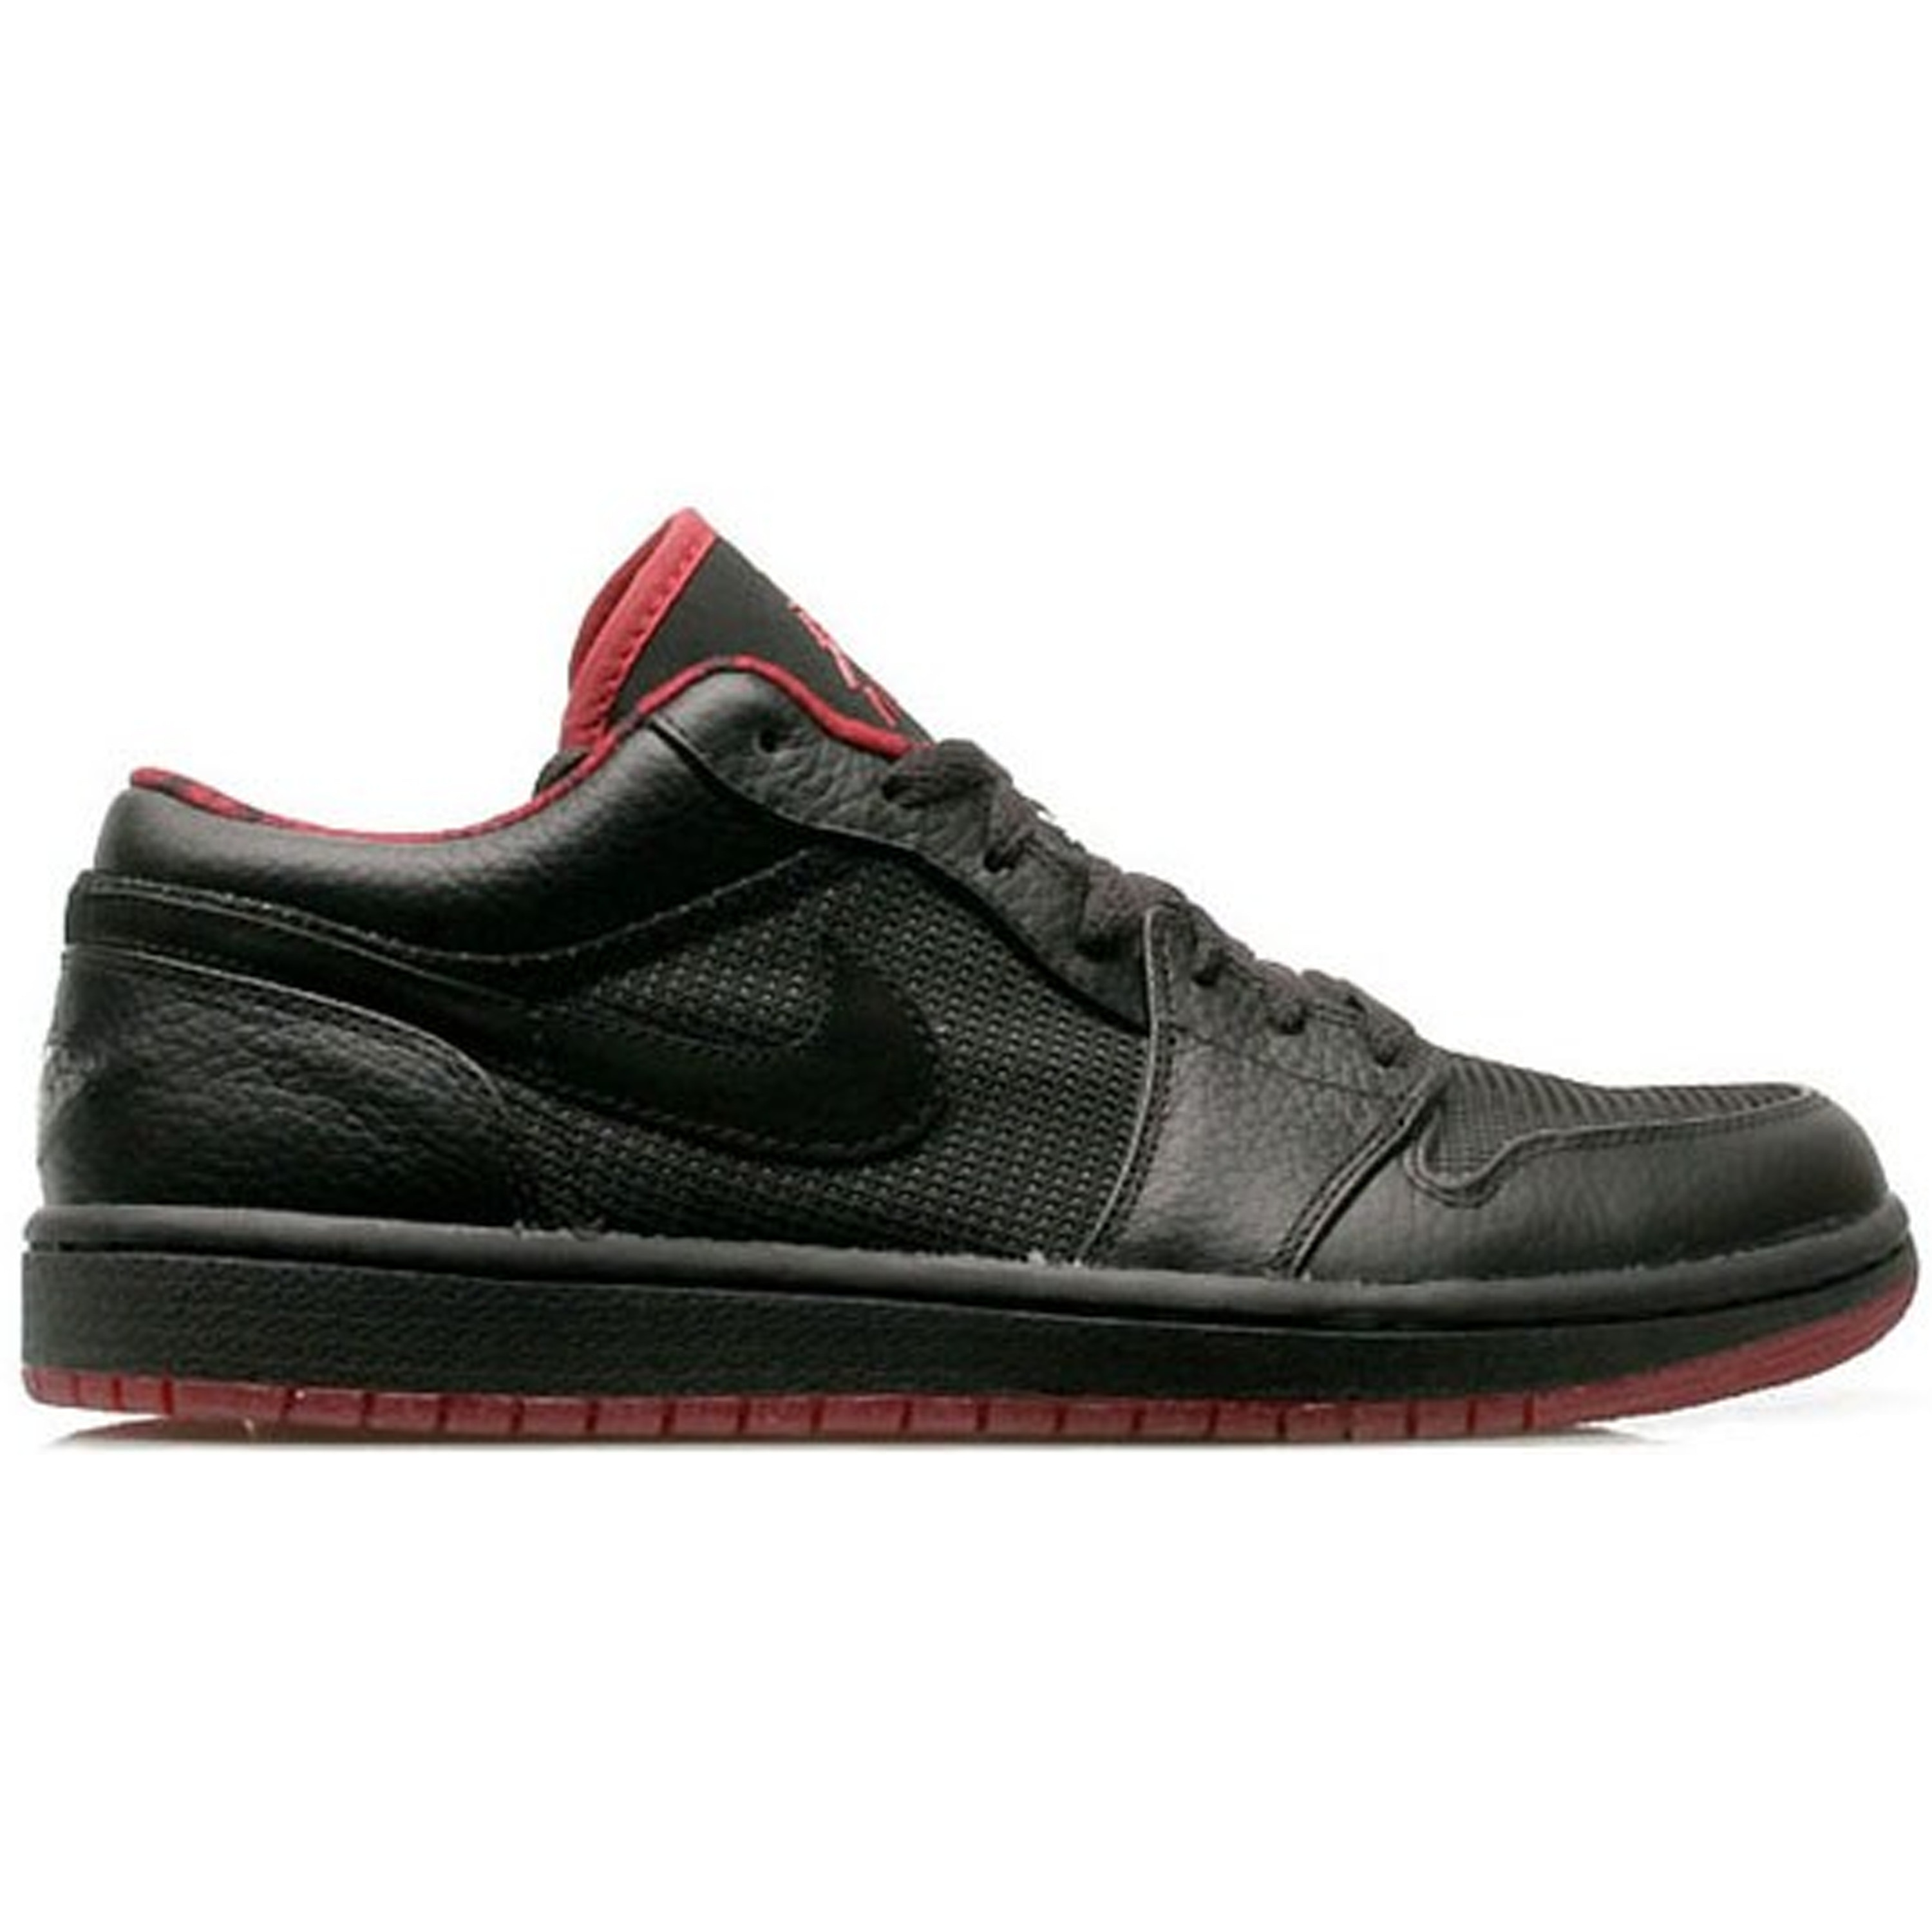 Jordan 1 Retro Low Black Metallic Silver Varsity Red (309192-001)